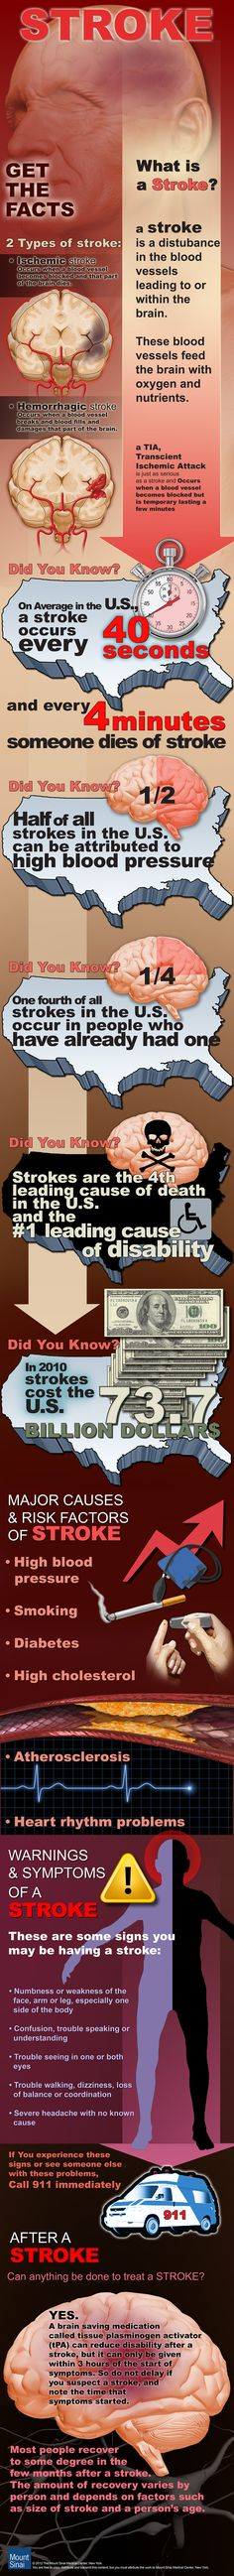 Get the Facts on Stroke Infographic.